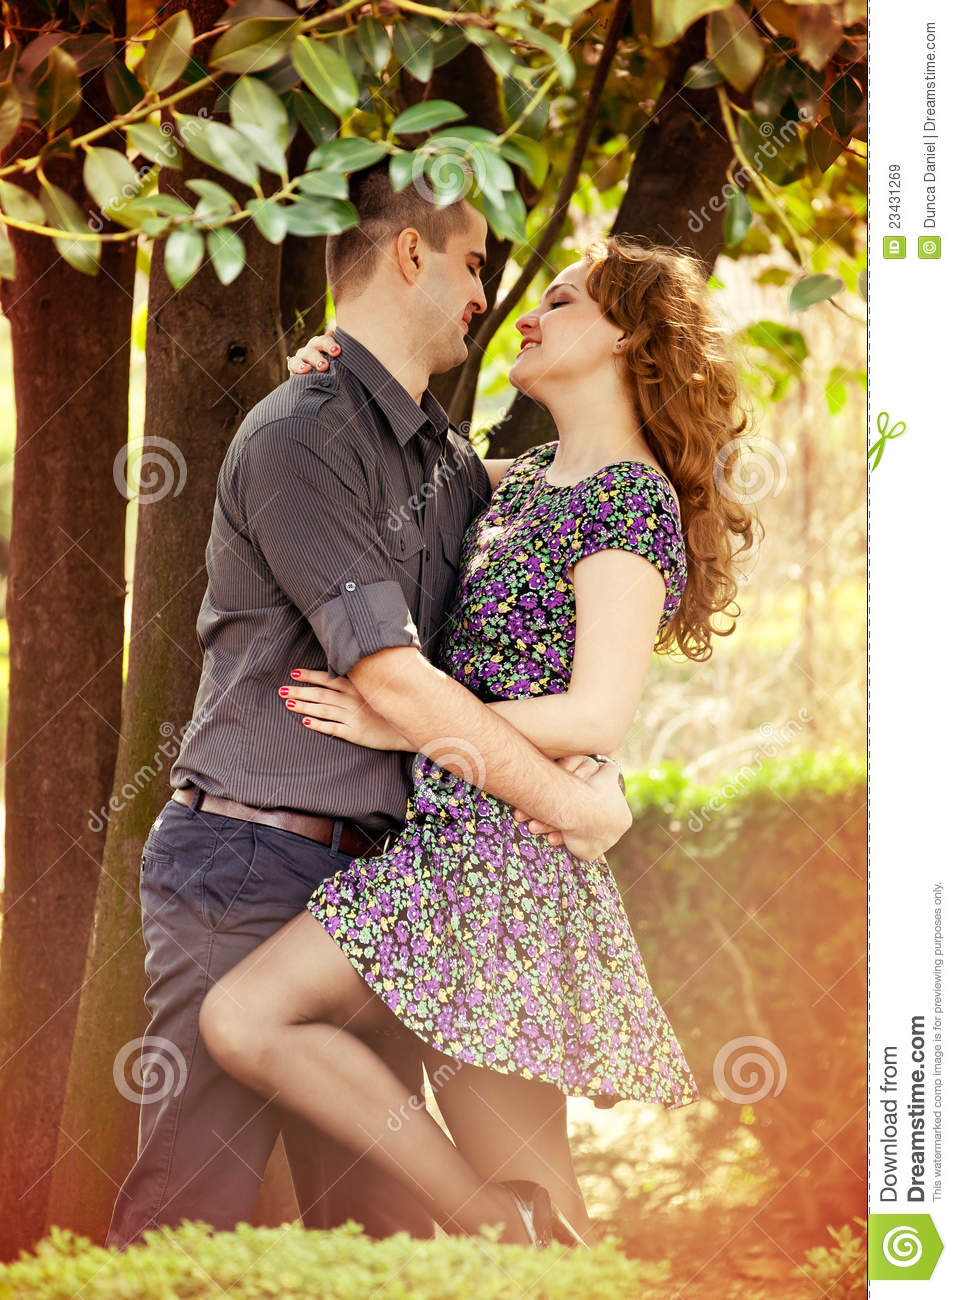 23 760 Lovers Hugging Photos Free Royalty Free Stock Photos From Dreamstime